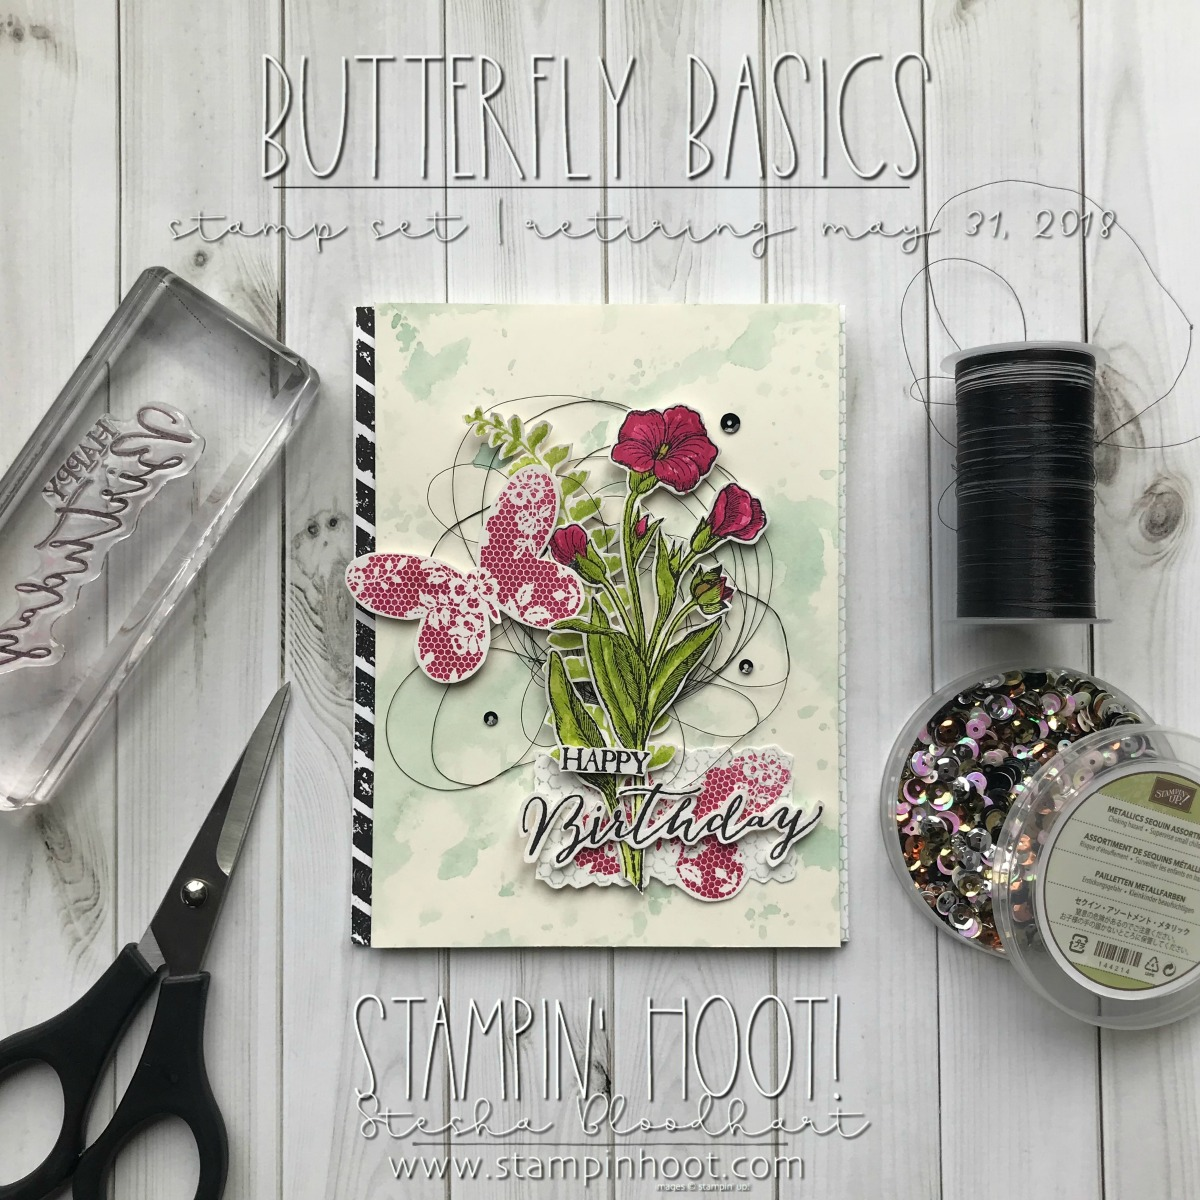 Butterfly Basics Stamp Set by Stampin' Up! Birthday Card By Stesha Bloodhart for #GDP137 Color Challenge. #steshabloodhart #stampinhoot